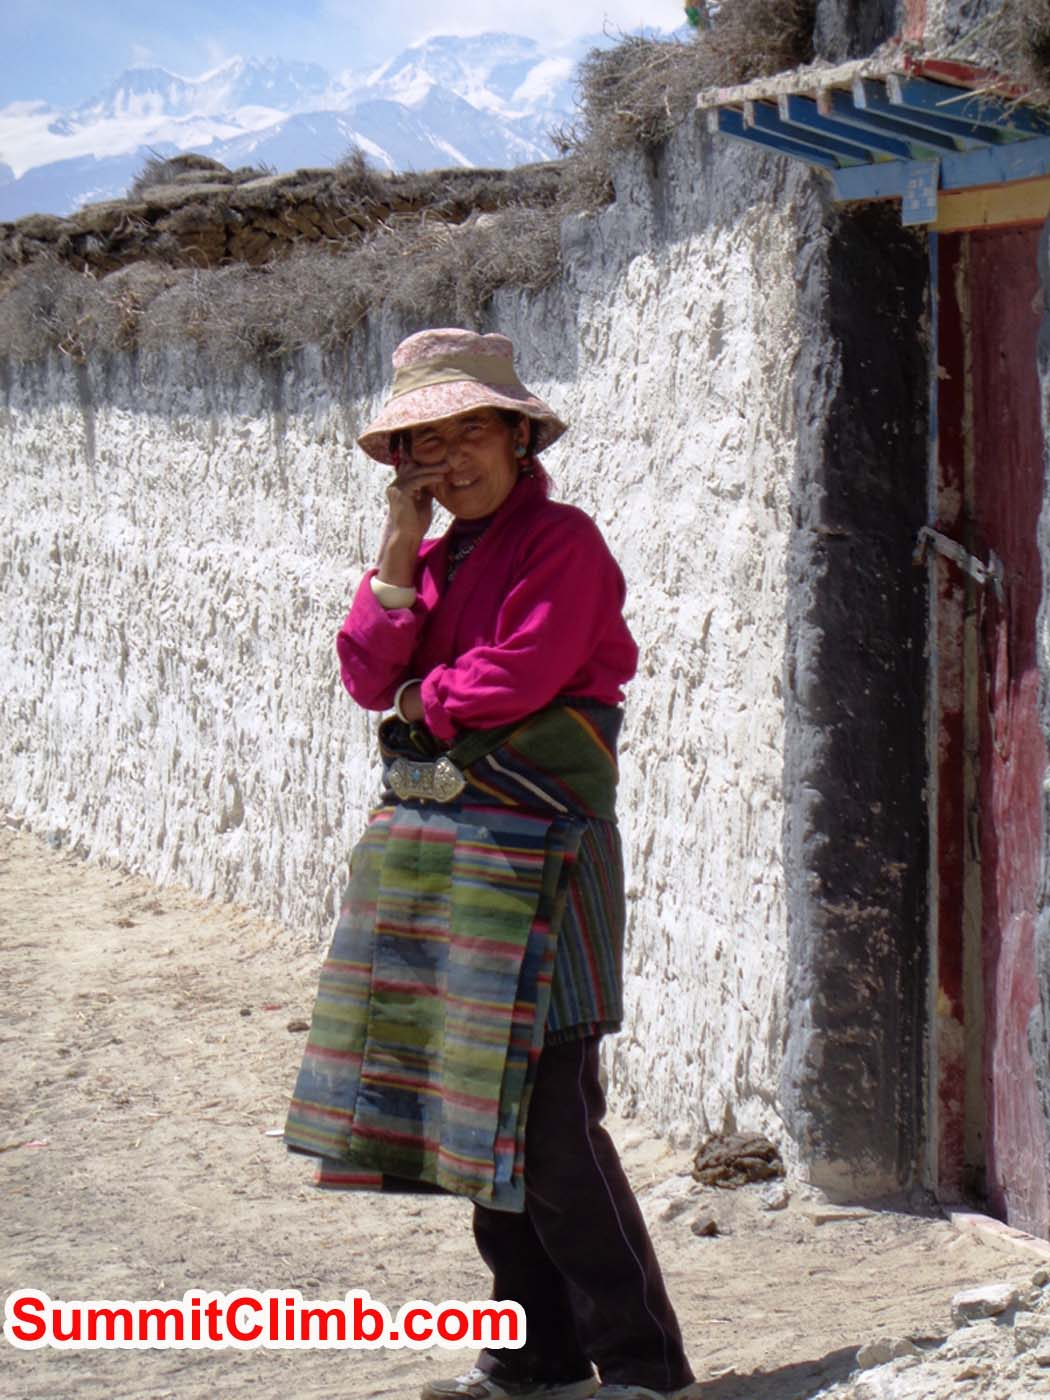 Tibetan plateau woman stands outside her house with Mount Cho Oyu and Everest in the background. Sacha Guittet photo